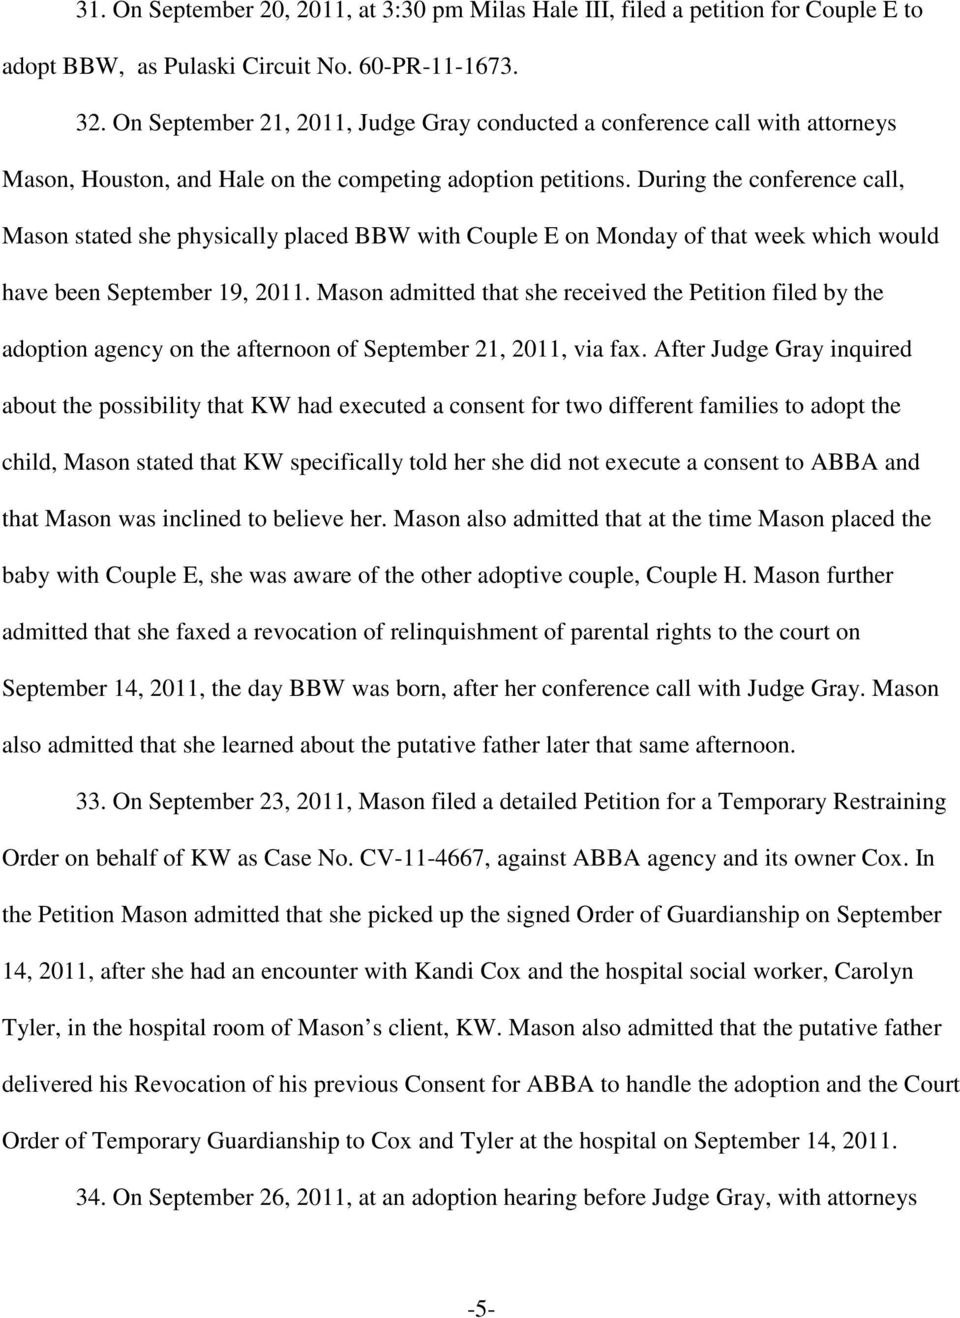 During the conference call, Mason stated she physically placed BBW with Couple E on Monday of that week which would have been September 19, 2011.